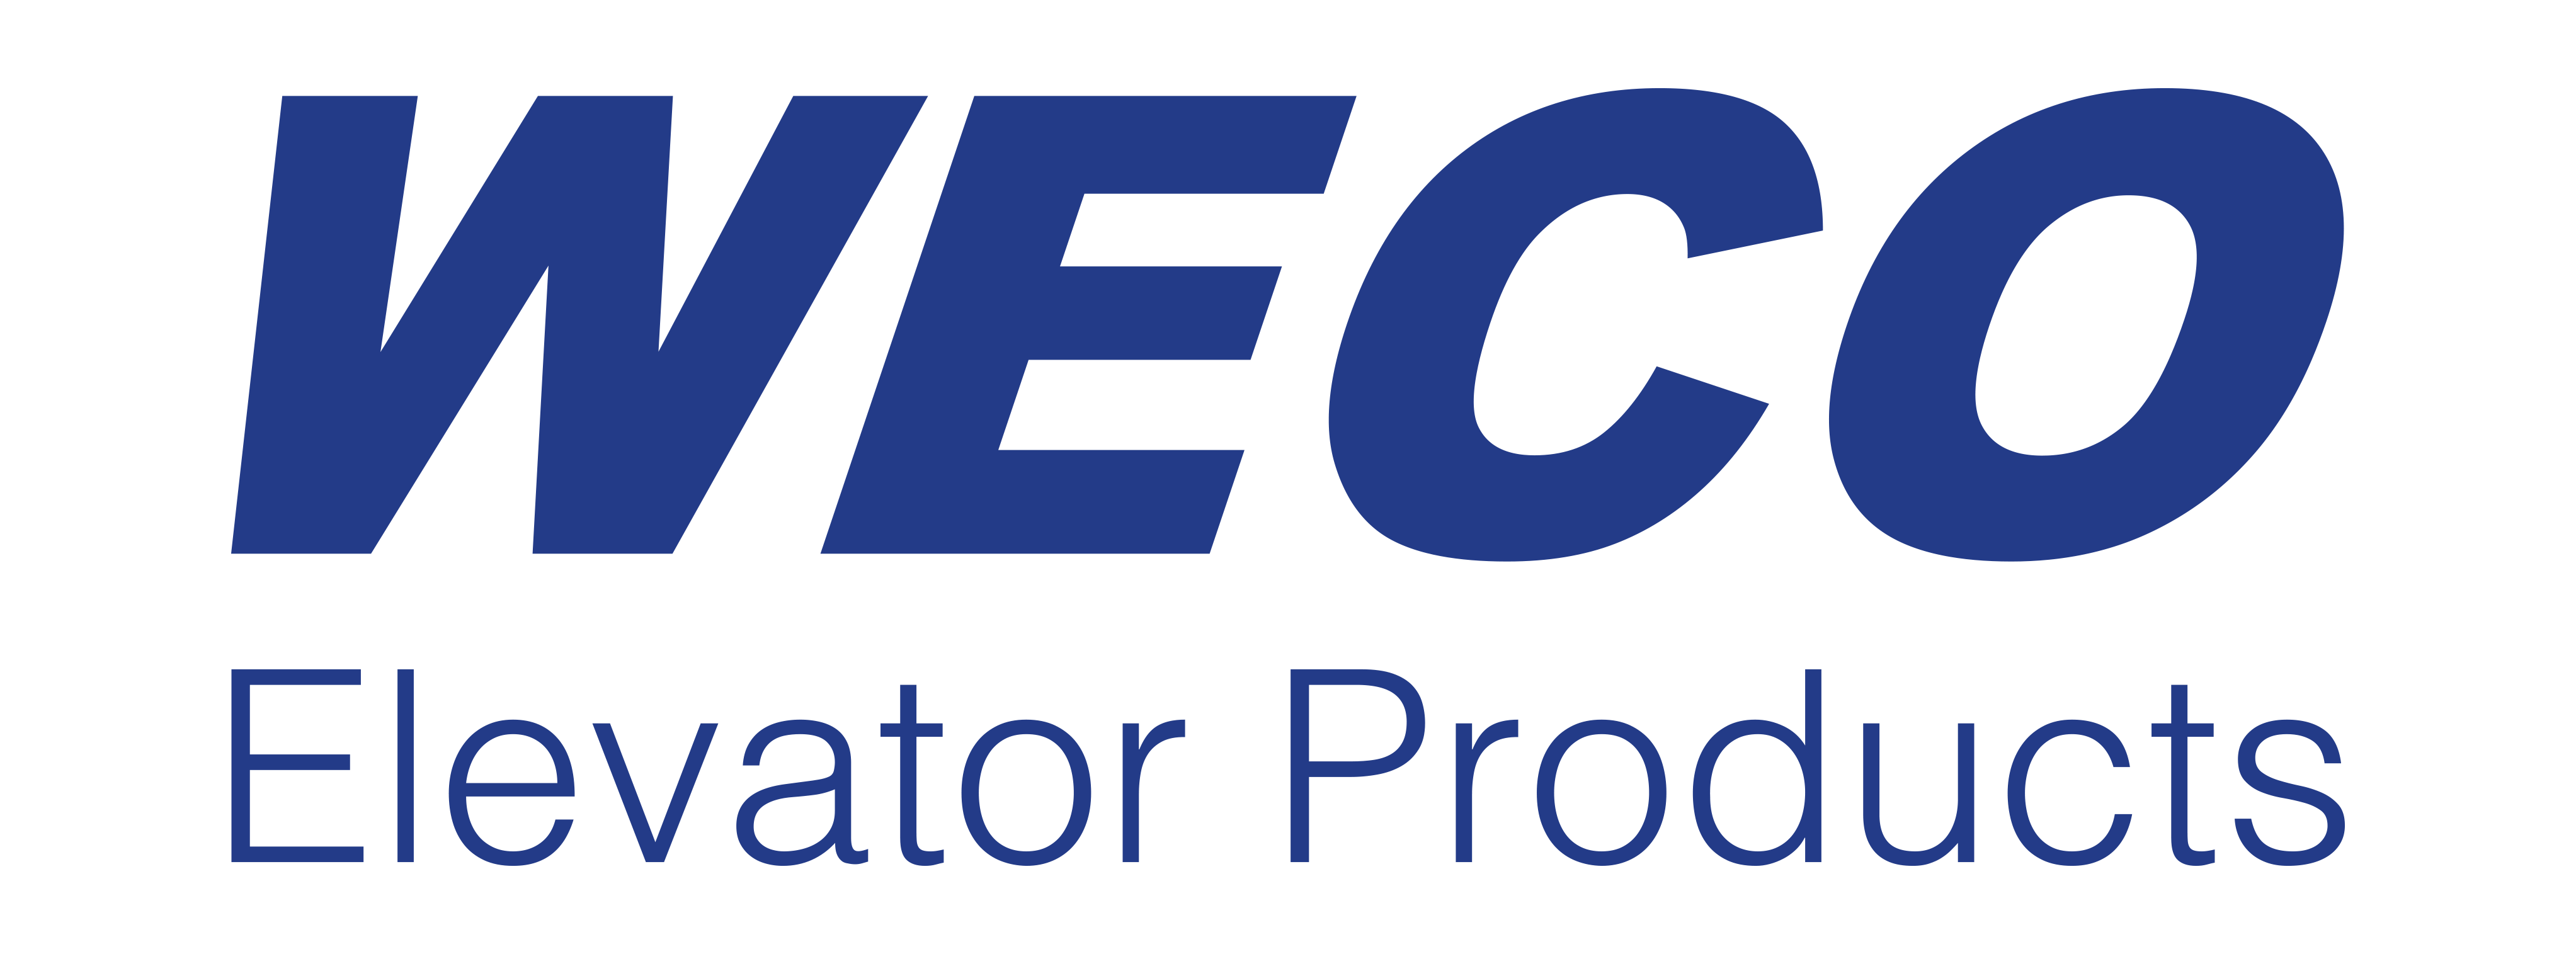 WECO Elevator Products is a leading supplier of elevator